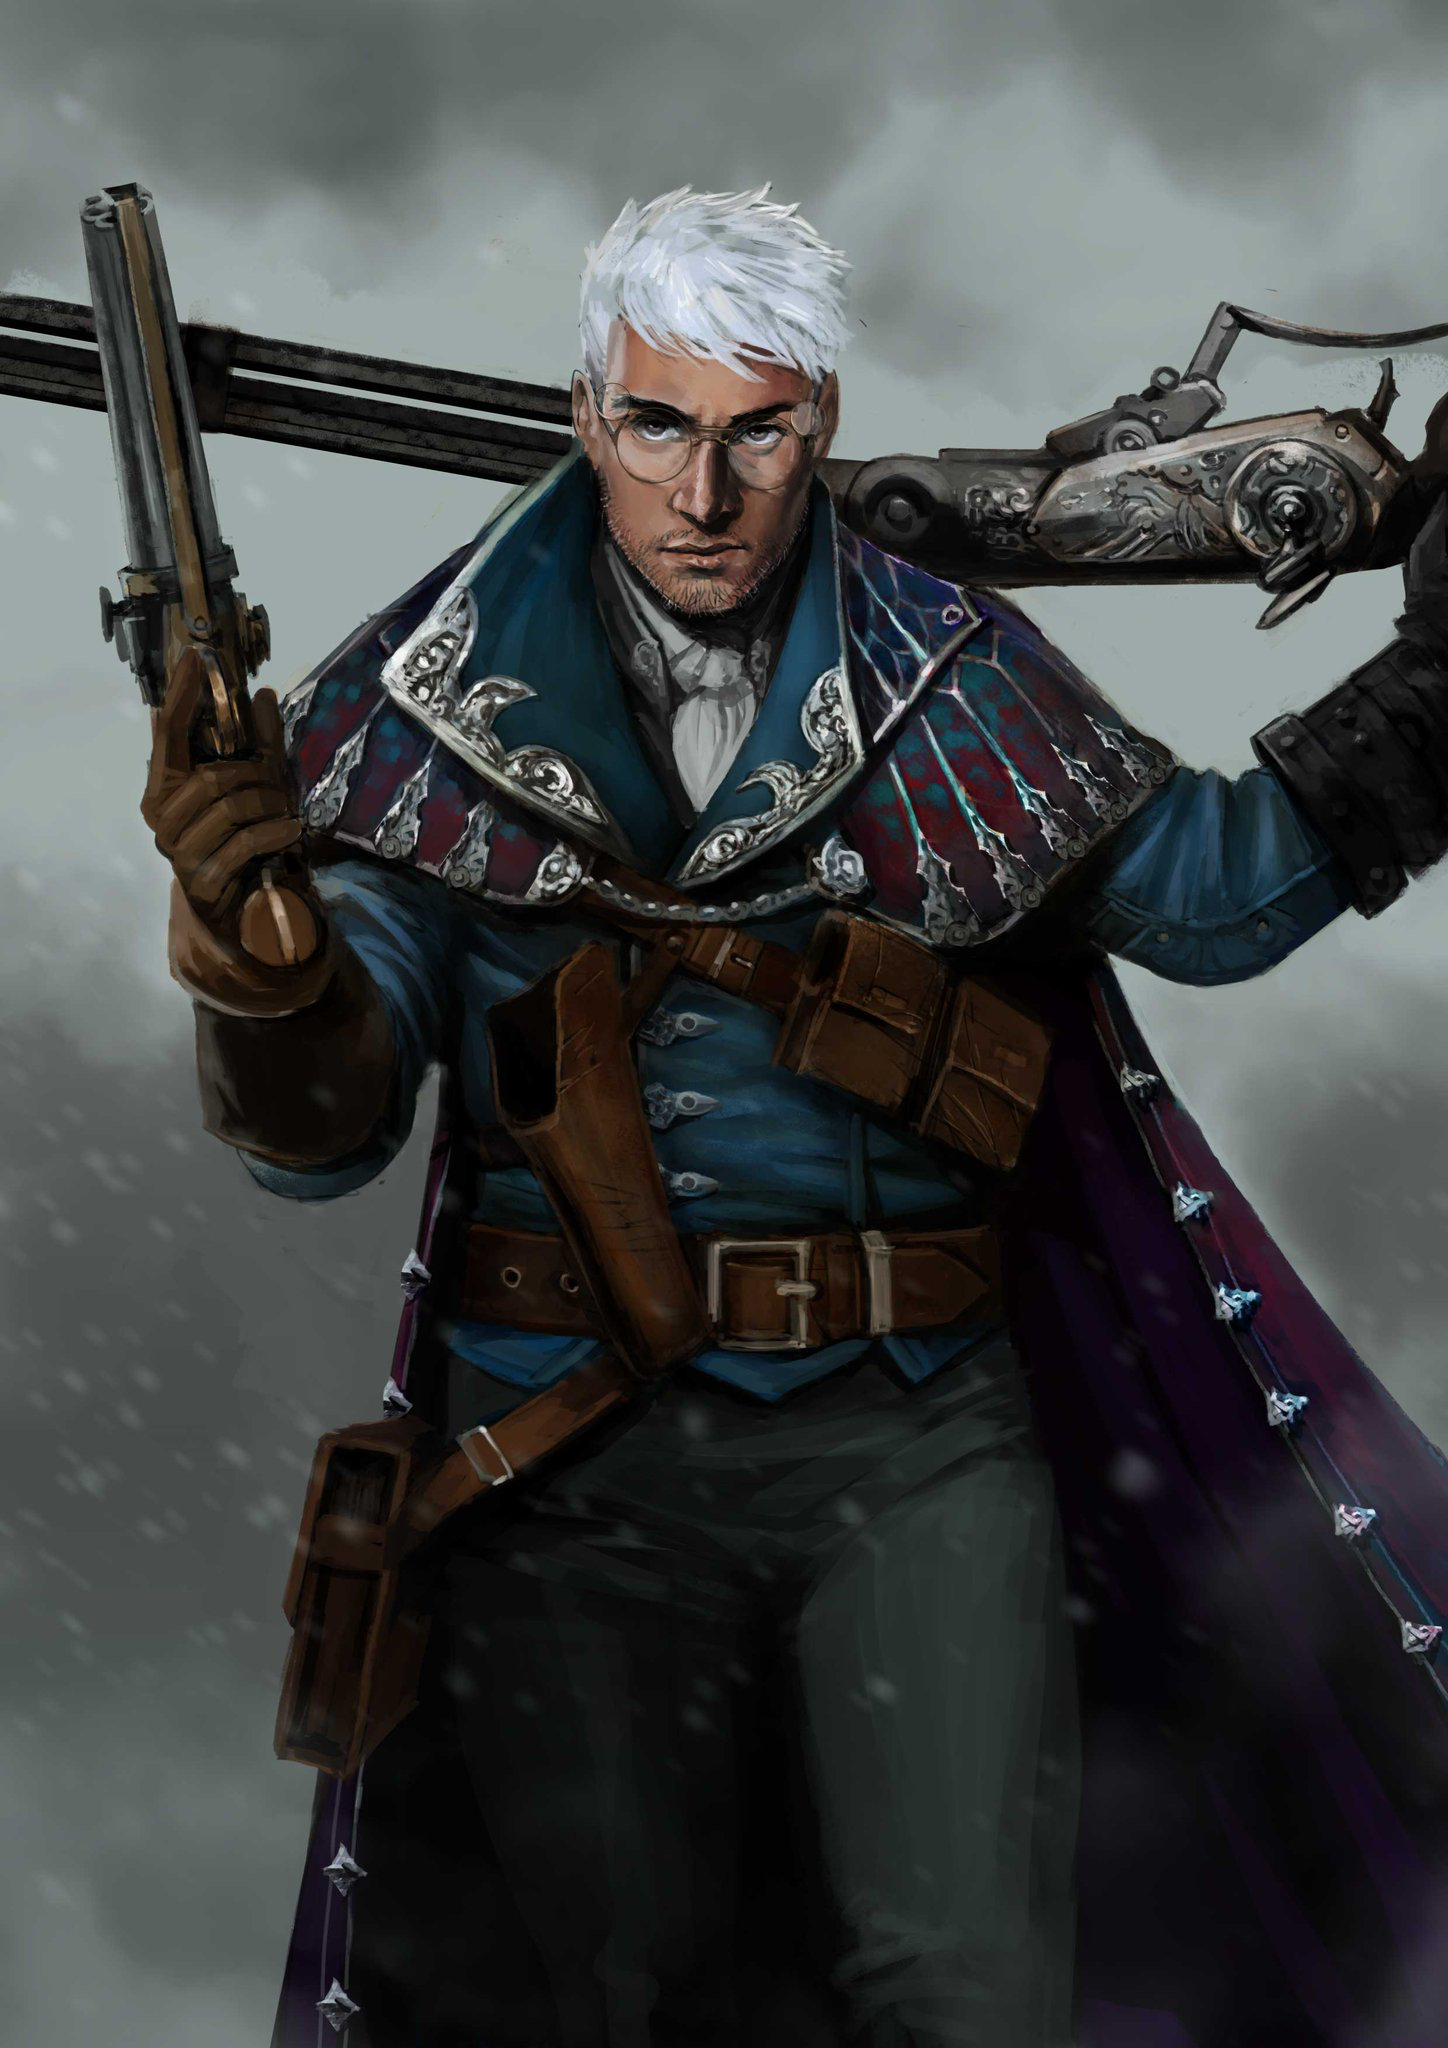 Dang Son Percy From Critical Role Critical Role Characters Critical Role Fan Art Steampunk Characters Critical role characters critical role fan art critical role percy larp character art character design vox machina voice actor fantasy characters. dang son percy from critical role